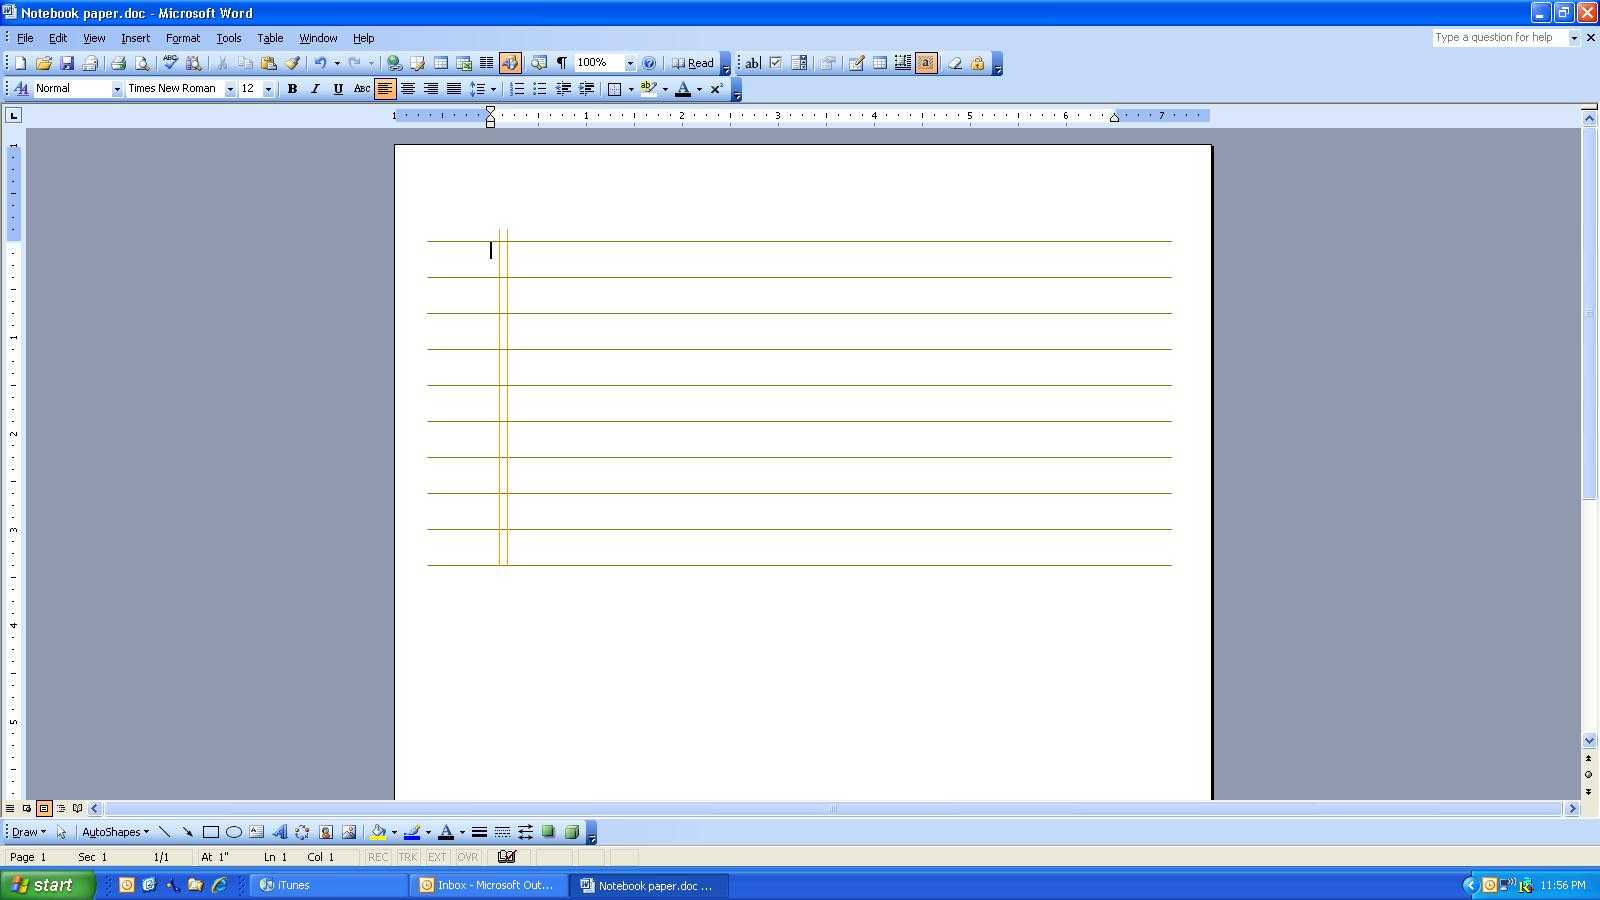 Microsoft Word 2010 Notebook Paper Template – Kerren Throughout Notebook Paper Template For Word 2010